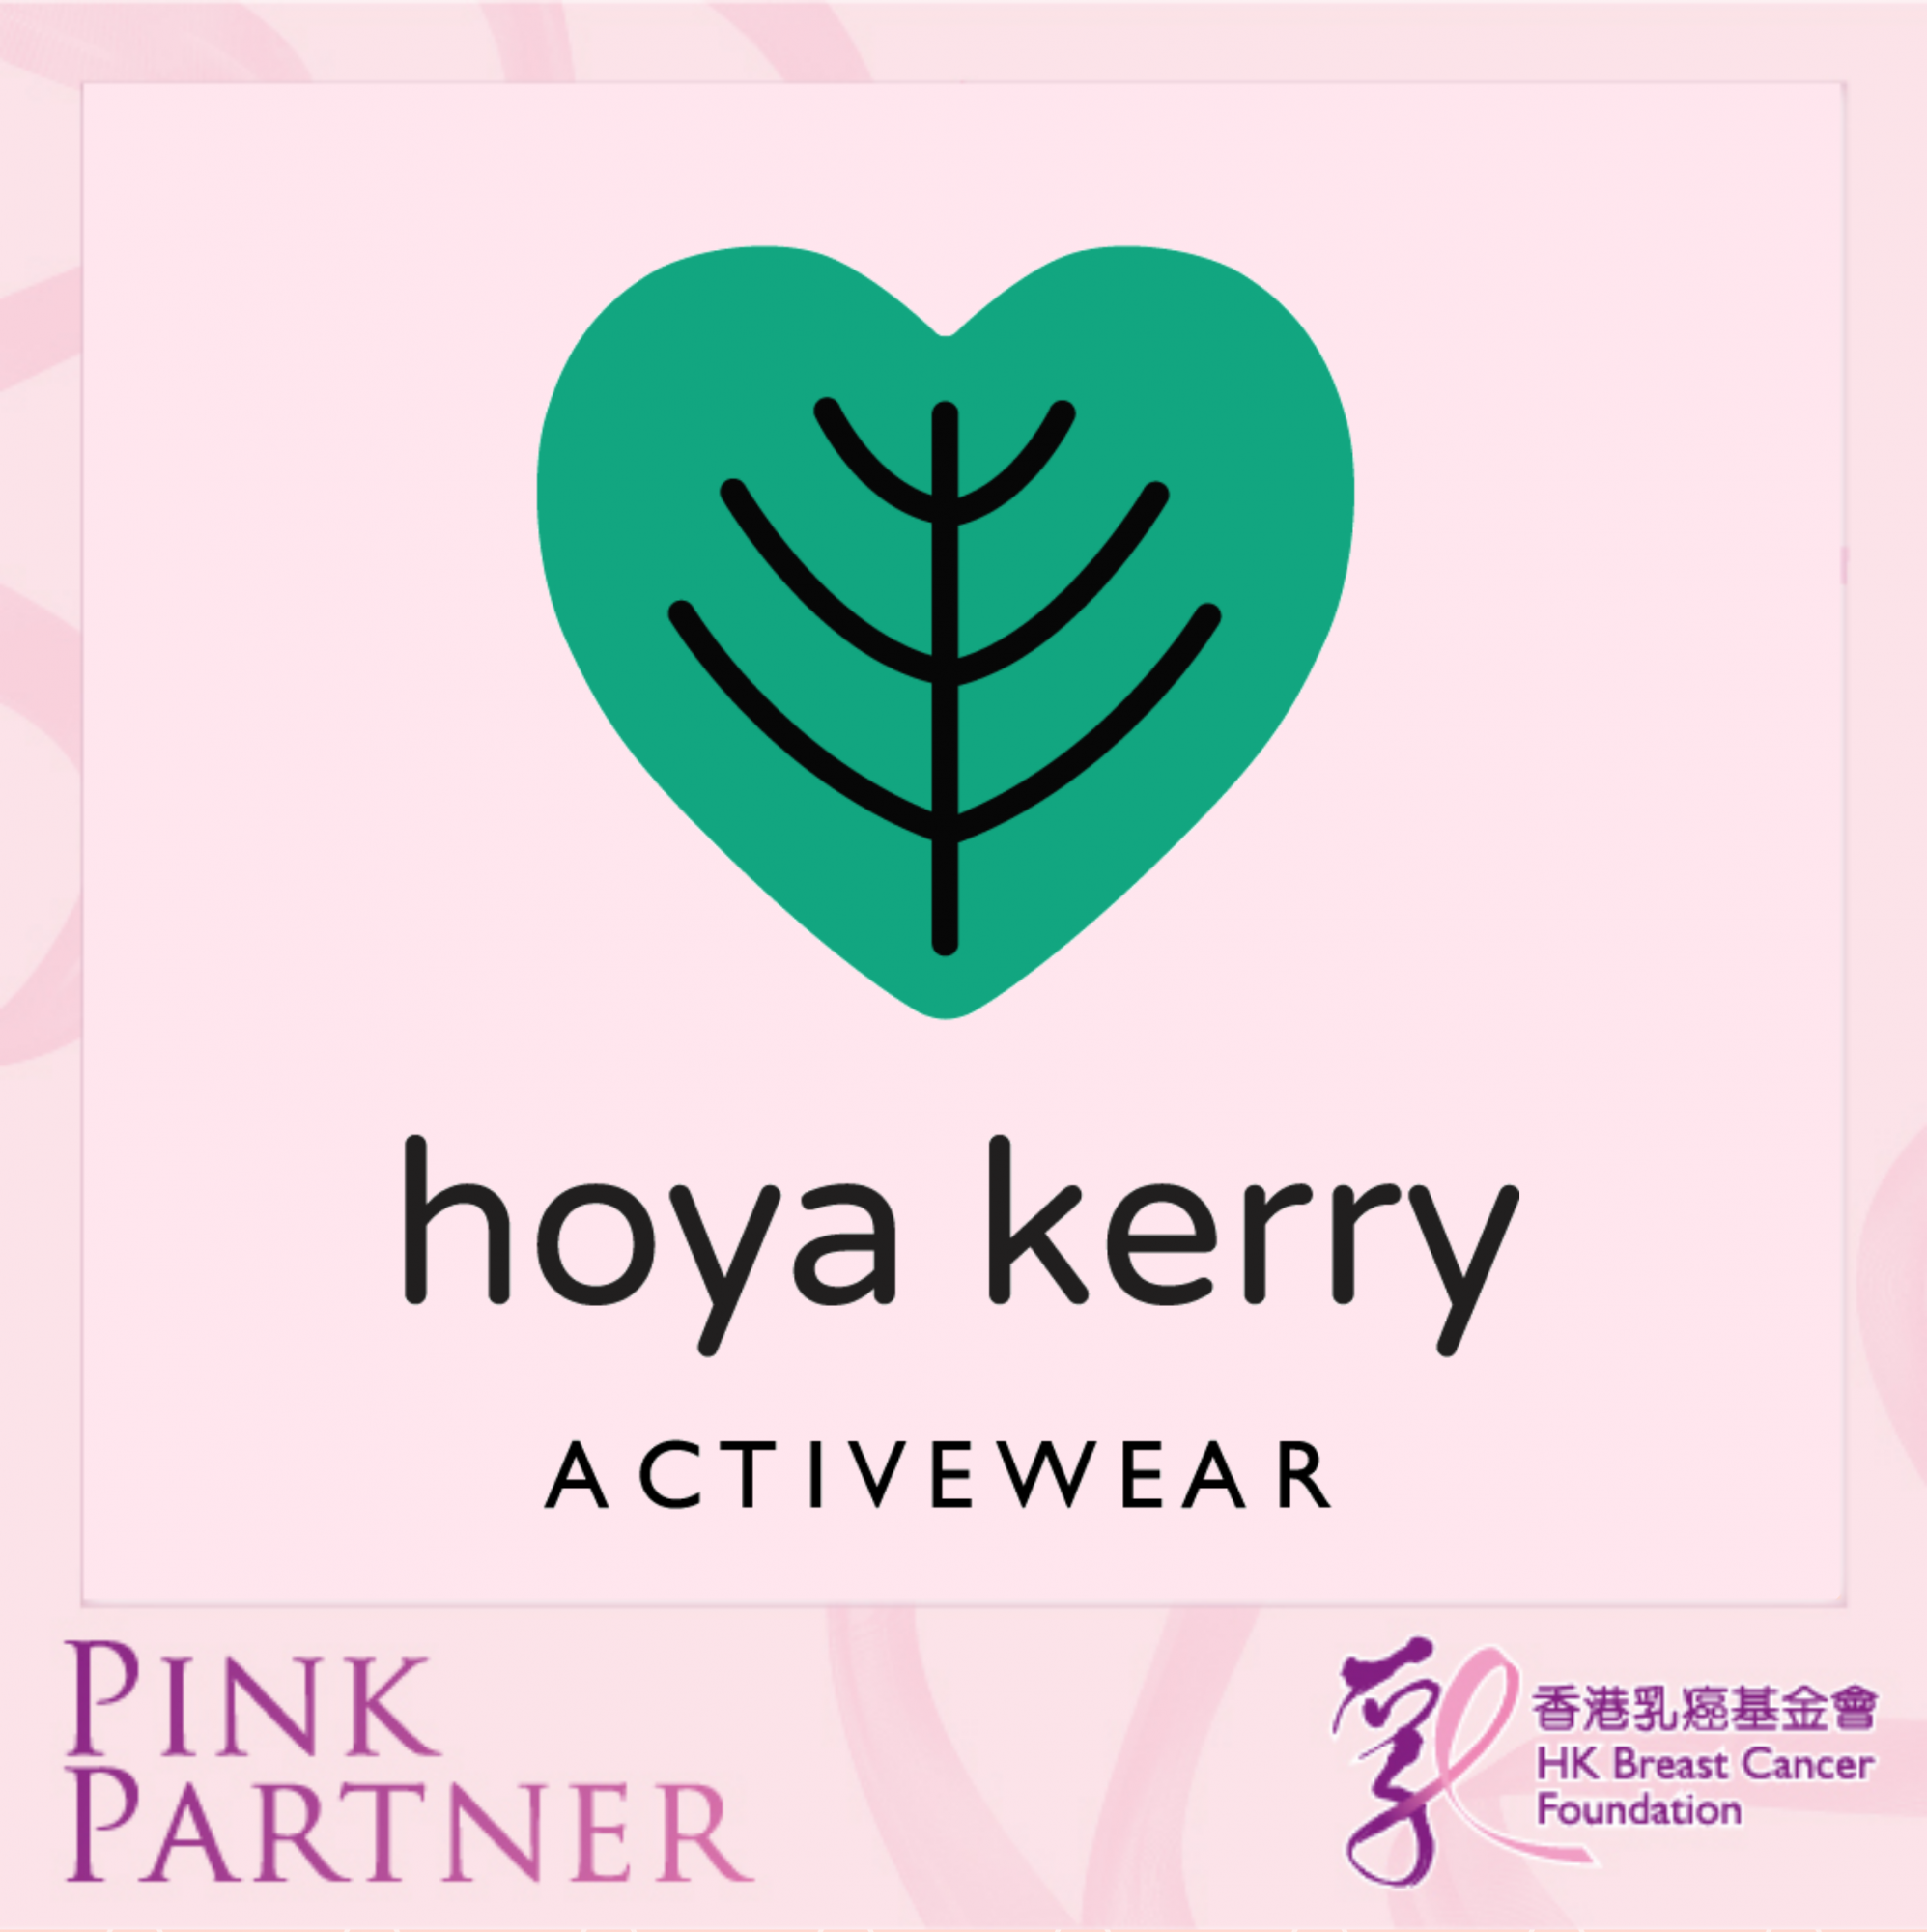 Self Photos / Files - Hoya Kerry PP 2019